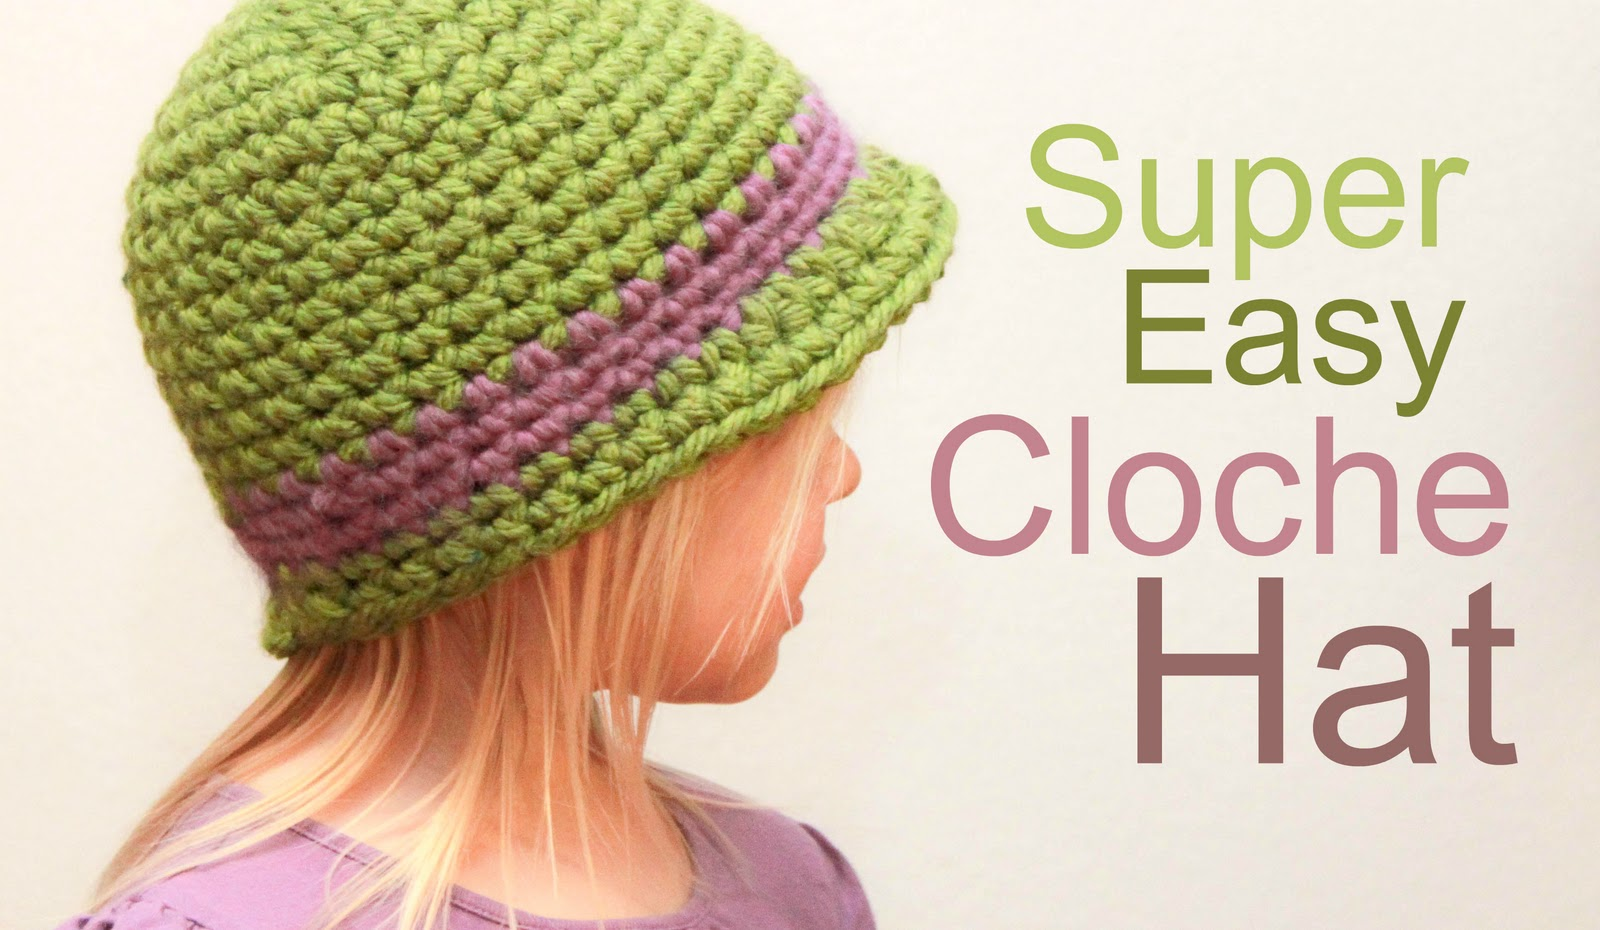 Free Baby Crochet Hat Patterns With Brim : Crochet For Free: Super Easy Cloche Hat with Brim (Size ...